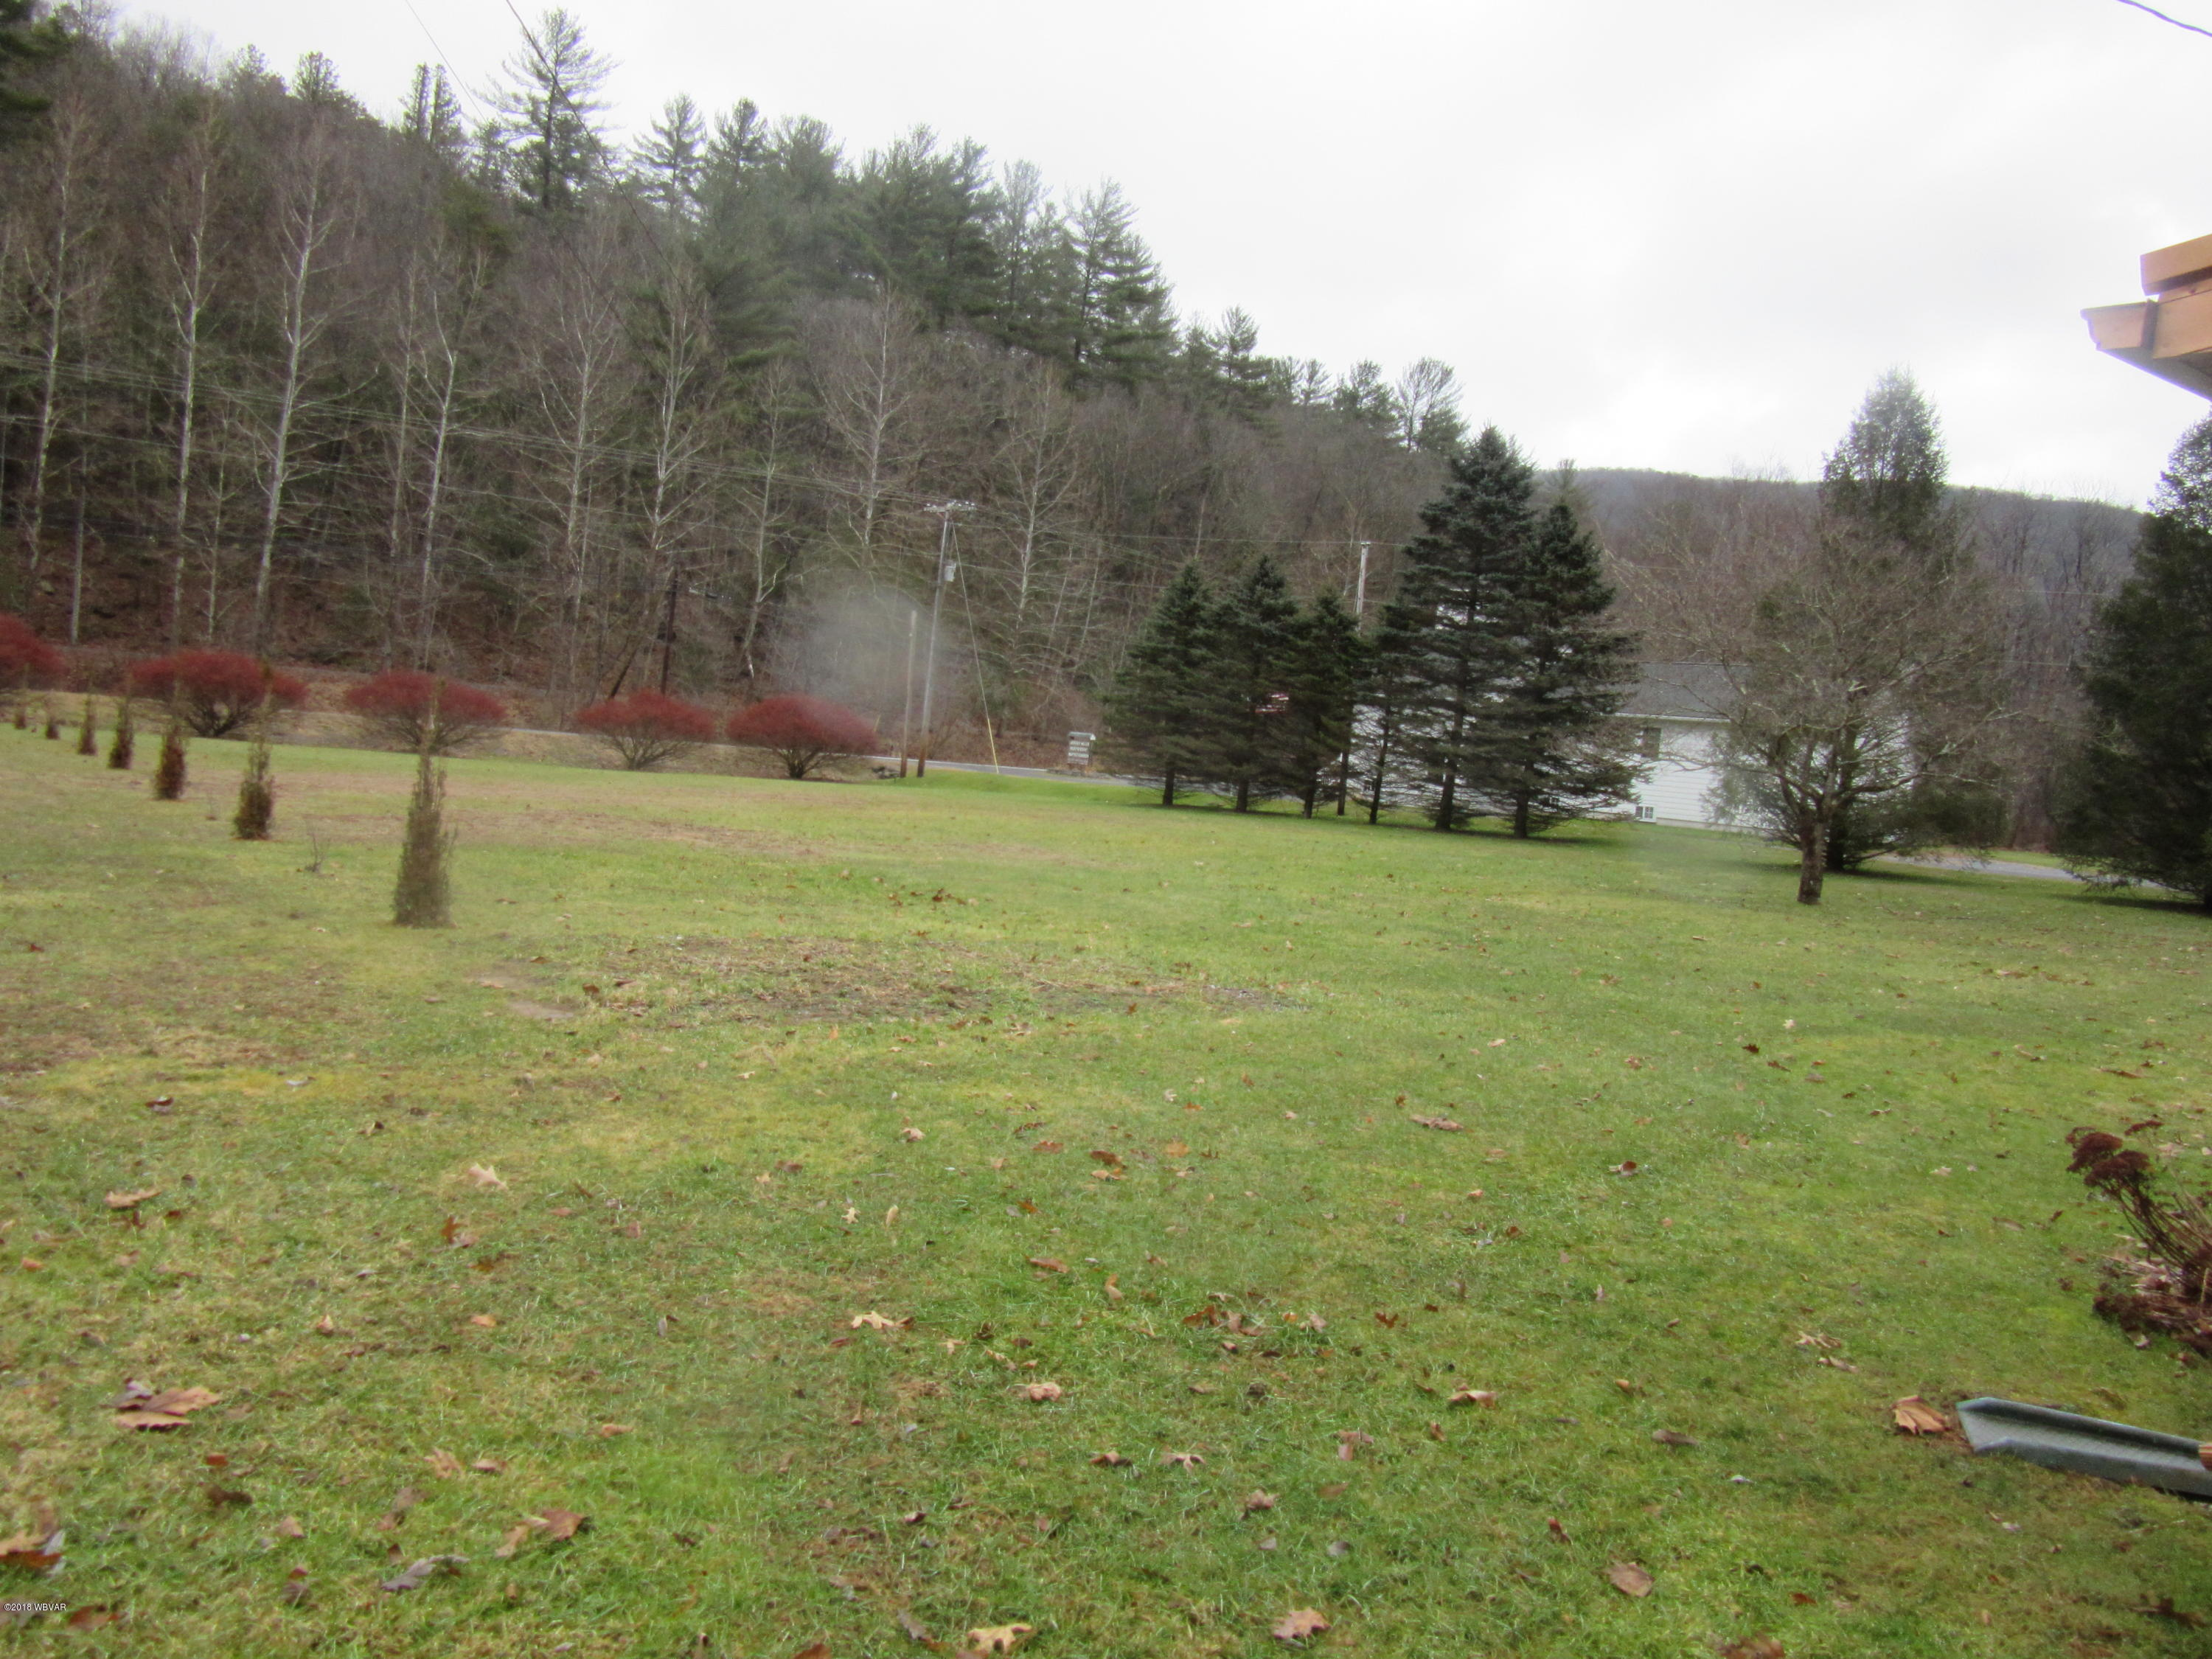 3711 RT 414 HIGHWAY,Jersey Mills,PA 17739,3 Bedrooms Bedrooms,Cabin/vacation home,RT 414,WB-88768